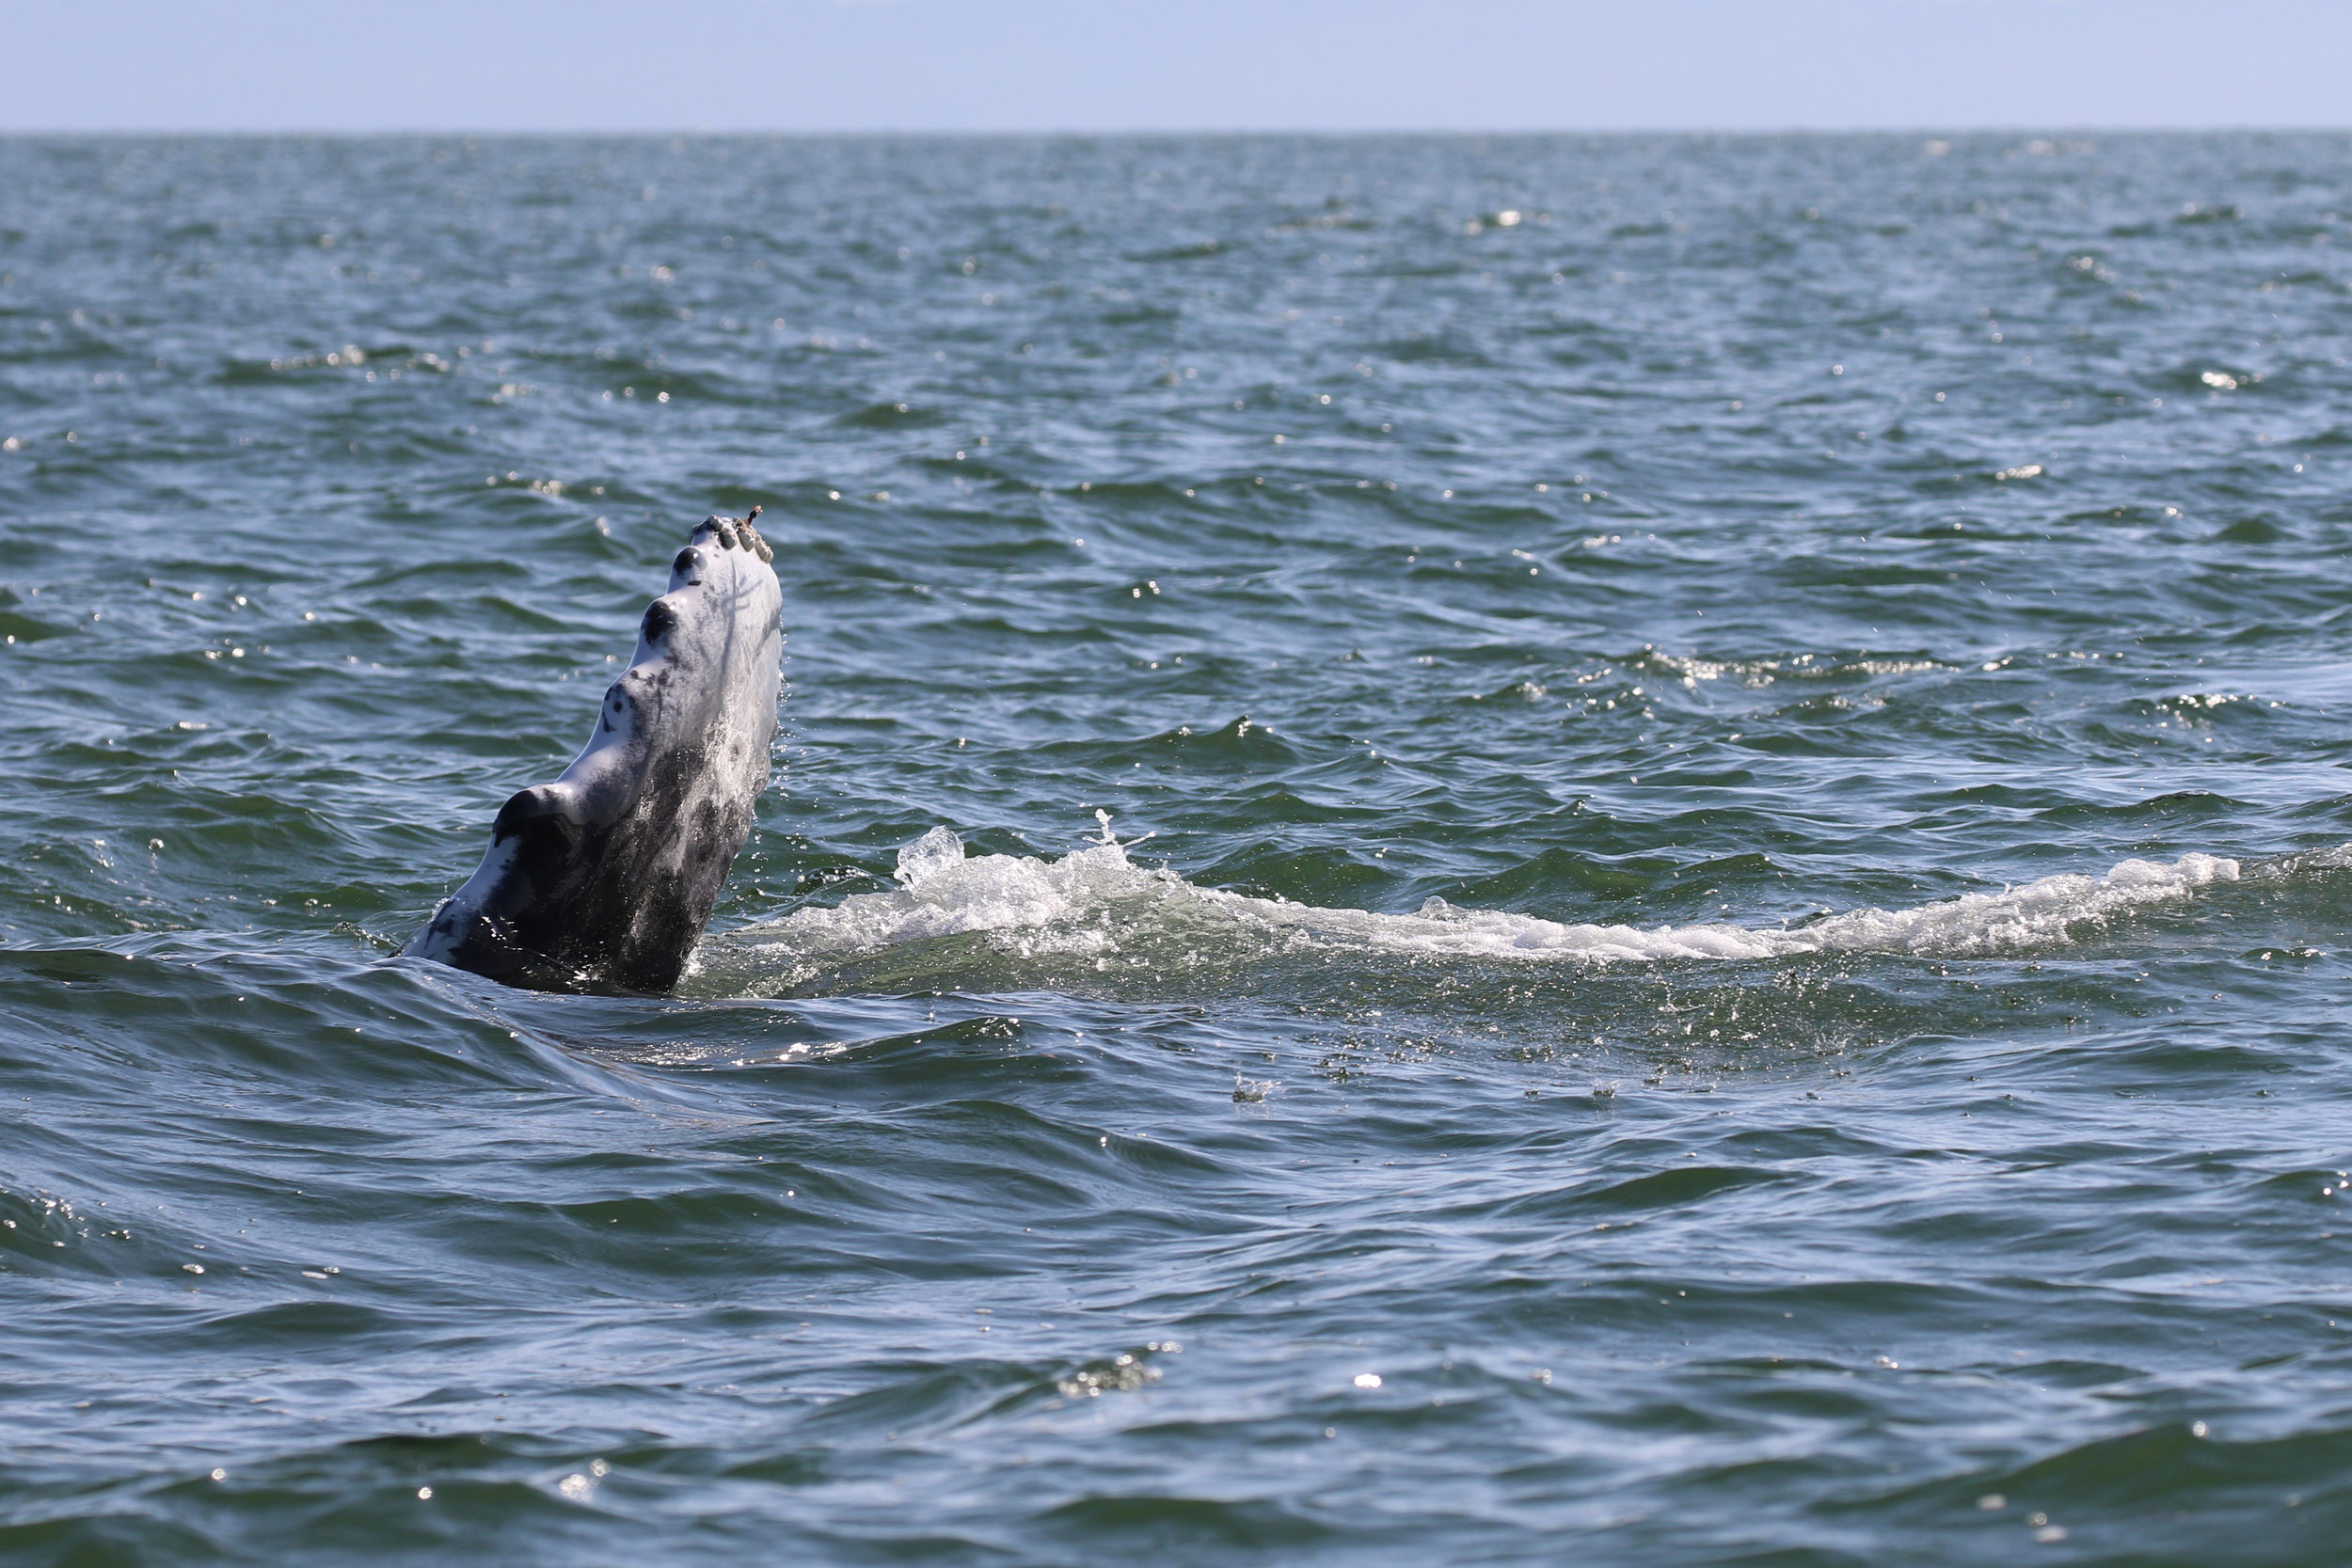 Slates calf waving at our boat with it's pectoral fin. Photo by Natalie Reichenbacher (3:30).